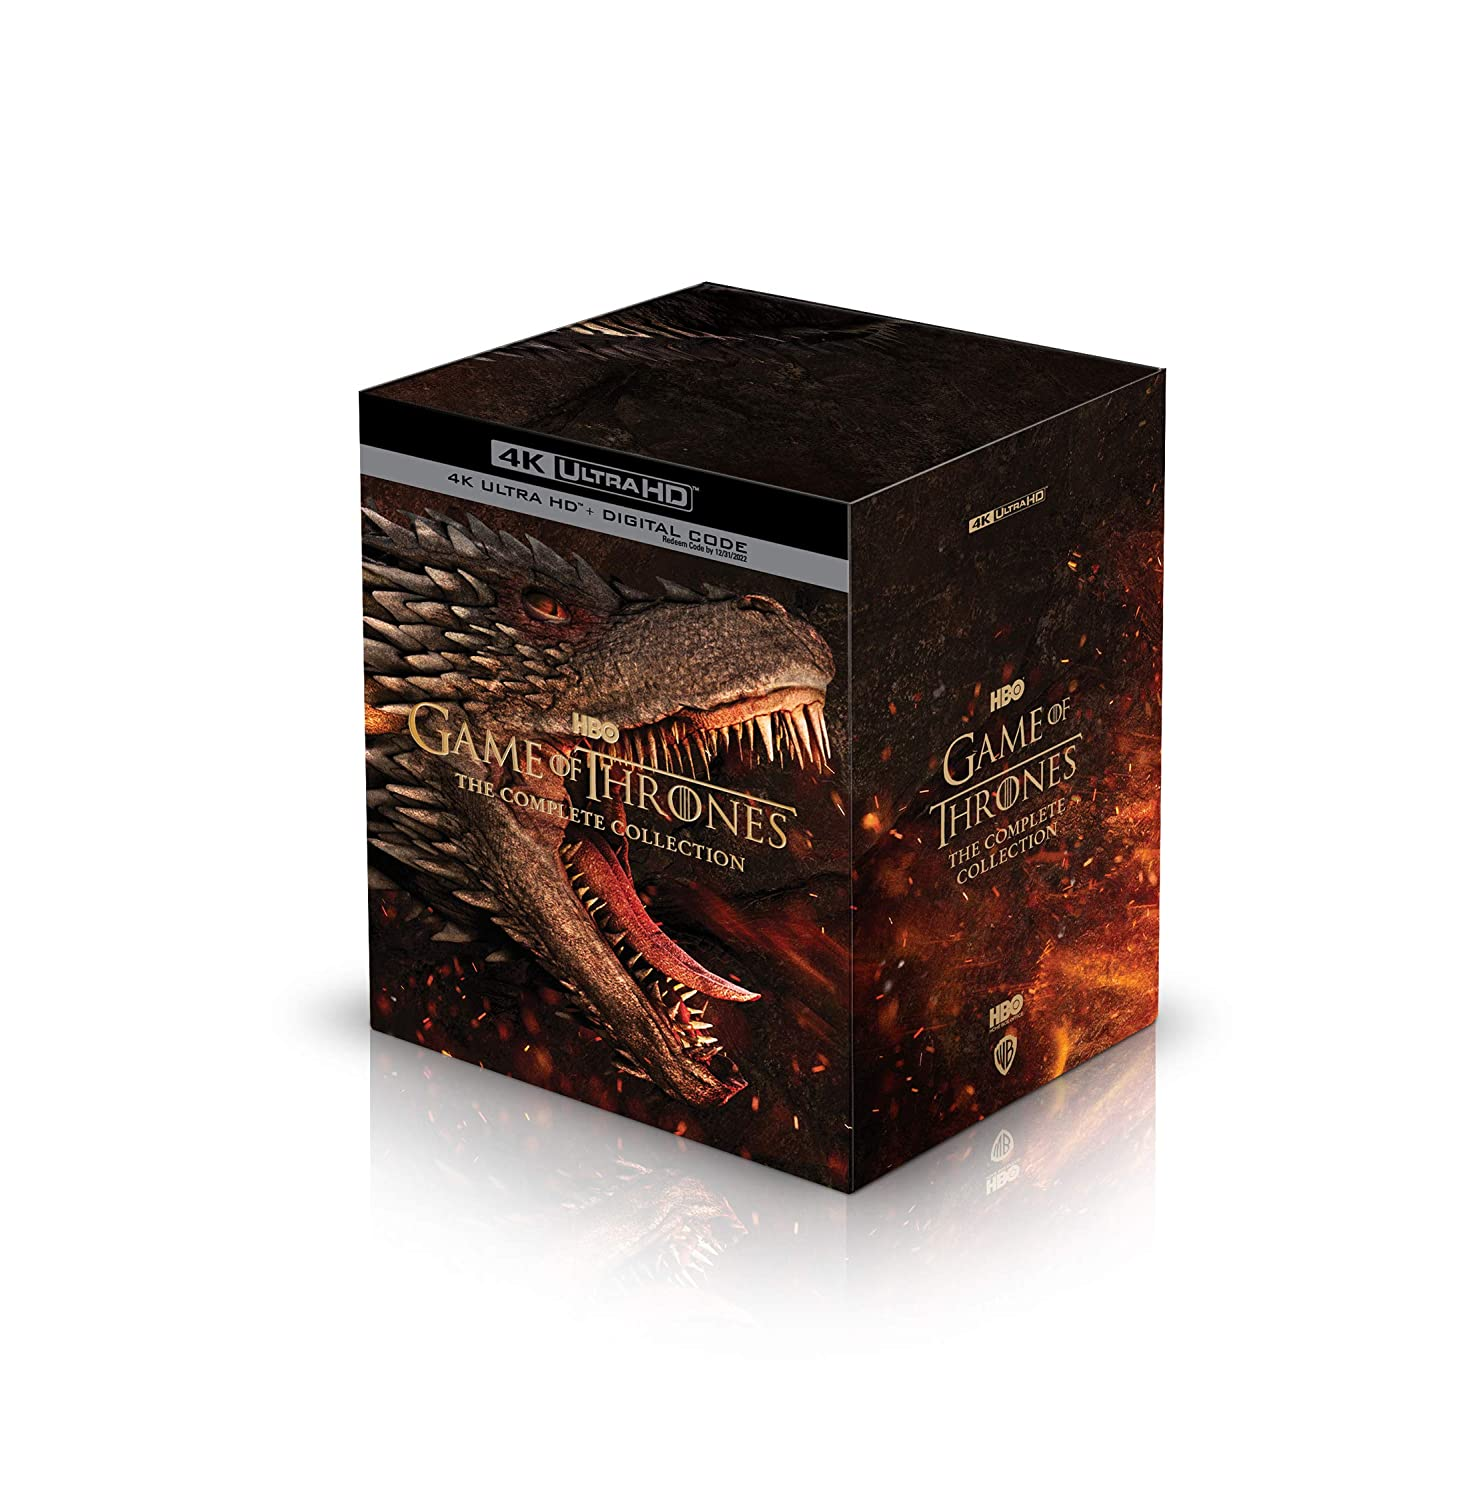 Game Of Thrones Series 4K 3D Box Cover